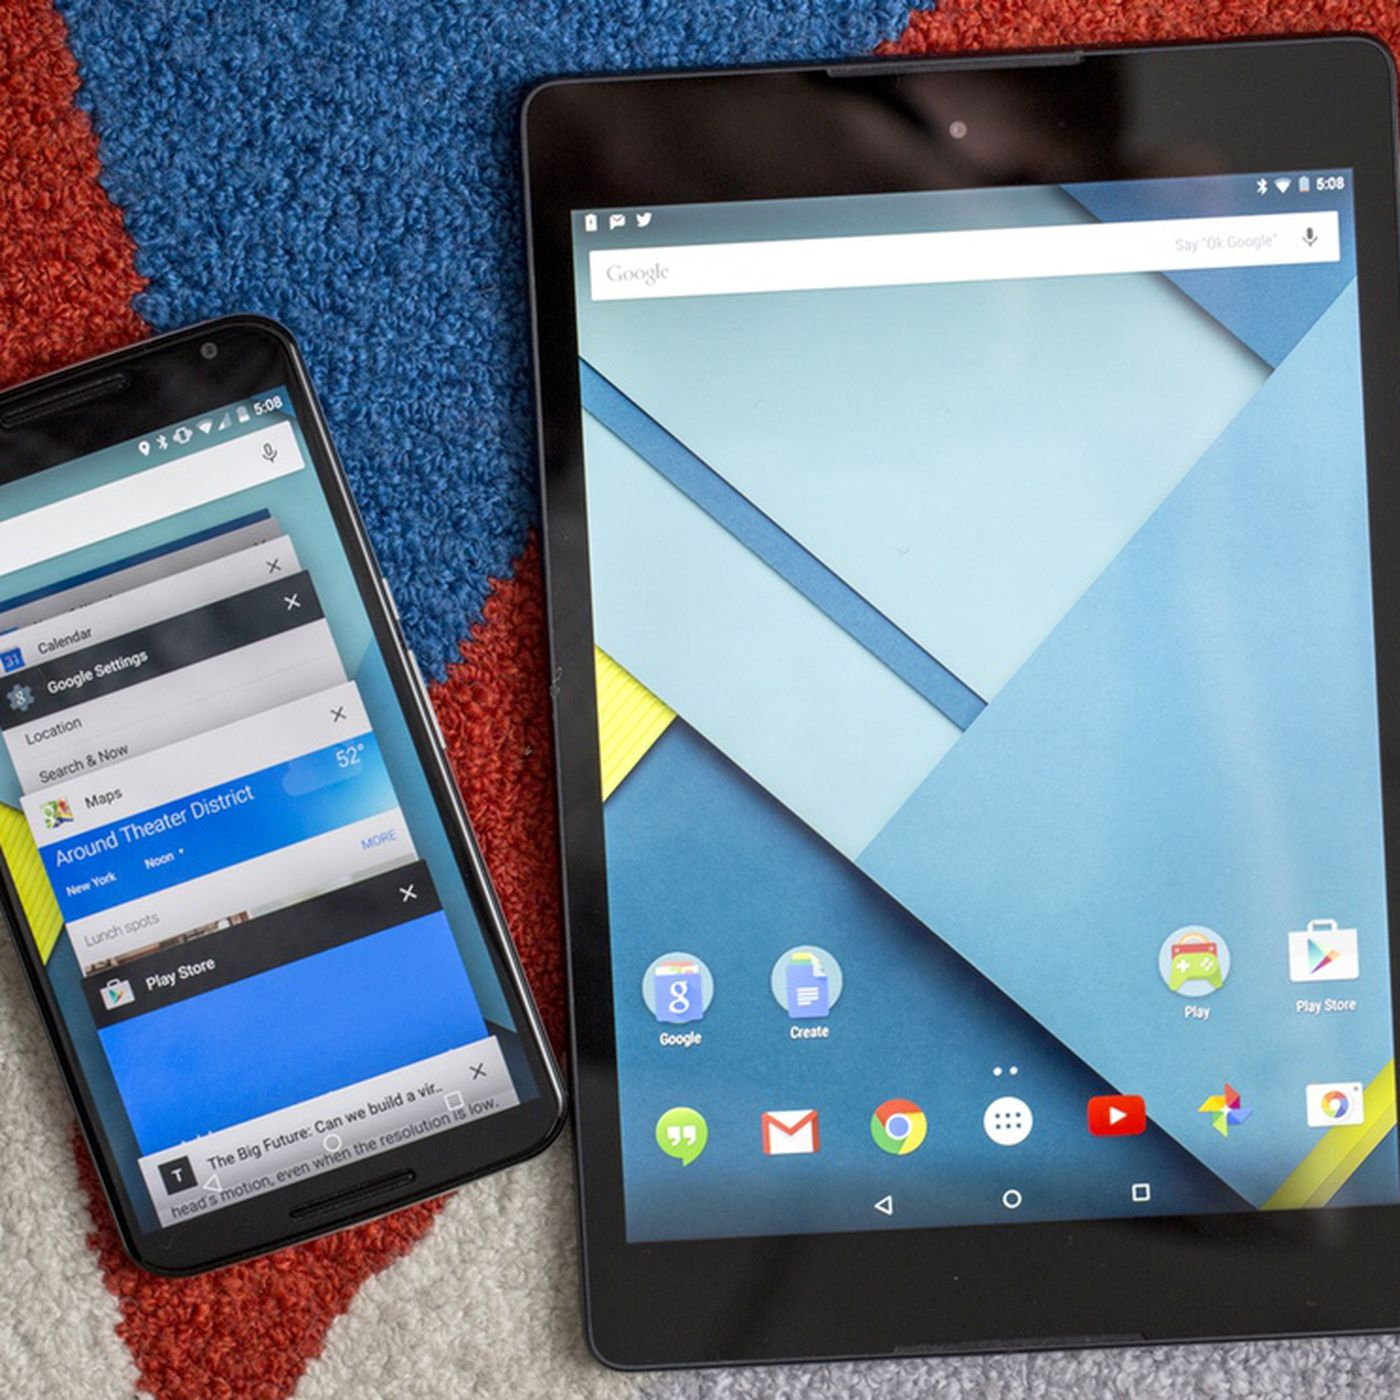 Android 5 0 Lollipop review | The Verge